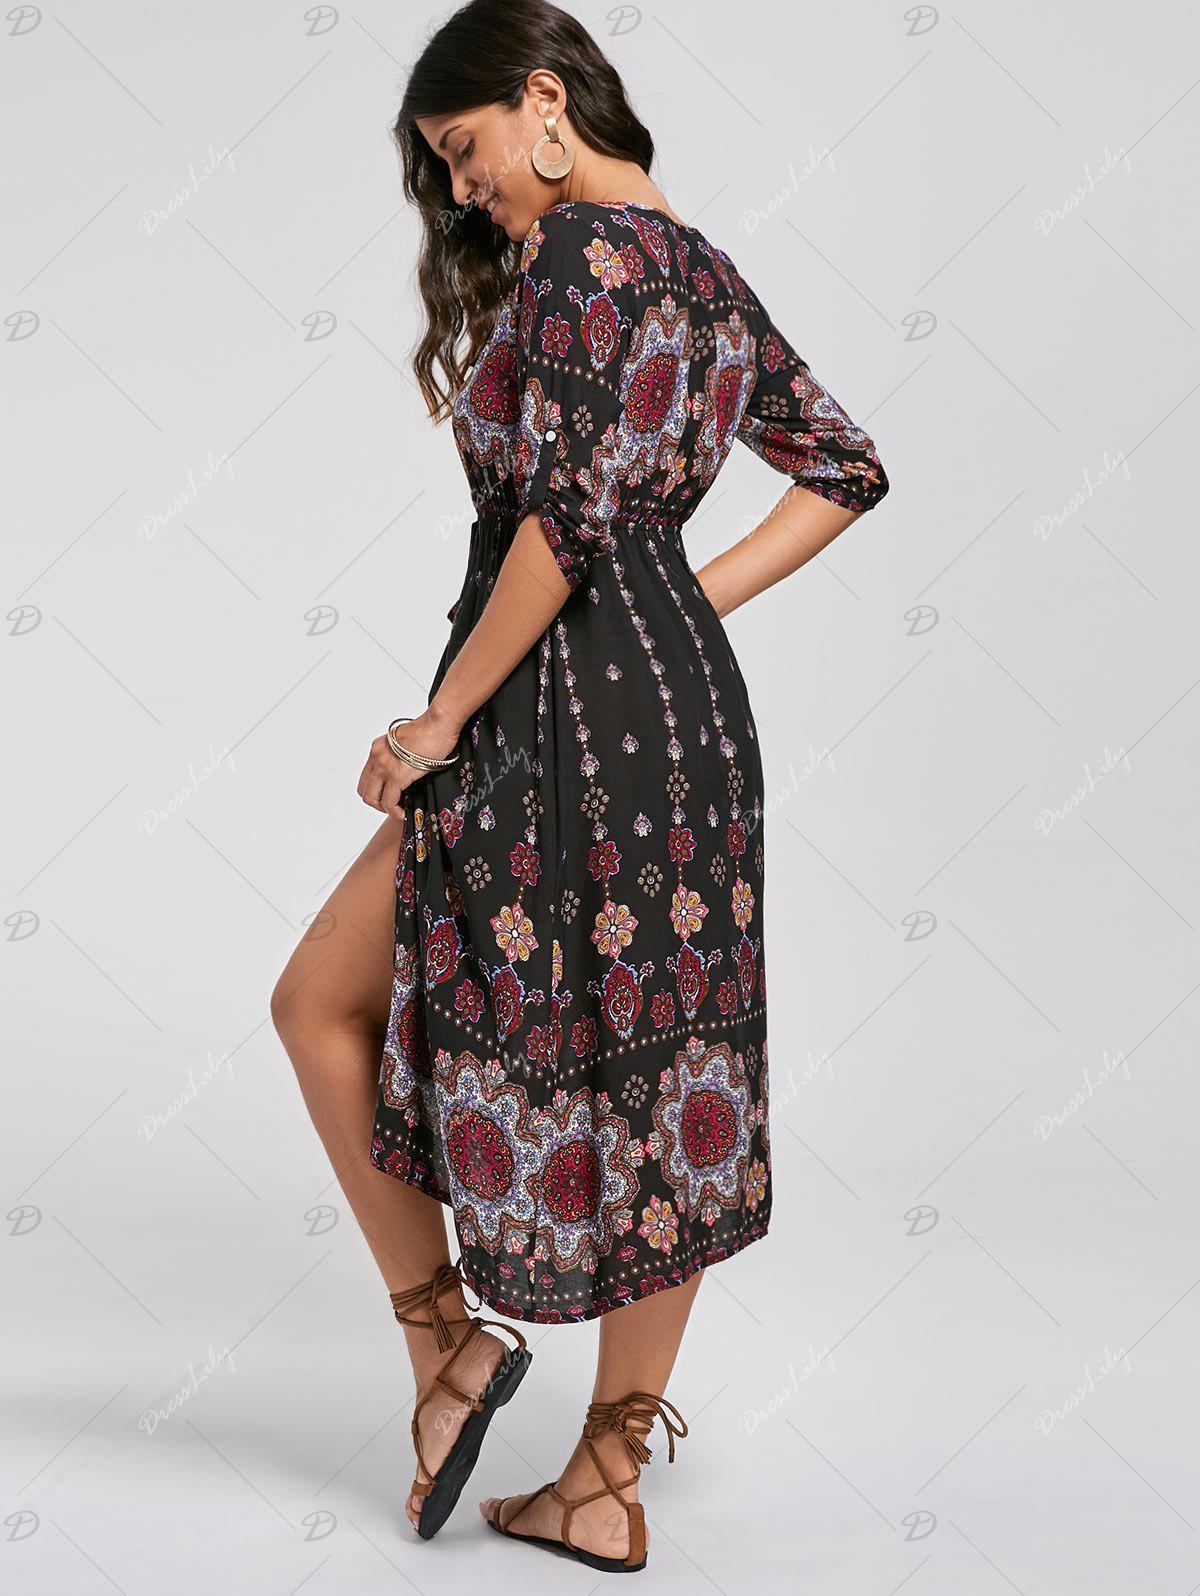 Bohemian Tribal Print Button Down Dress - COLORMIX S